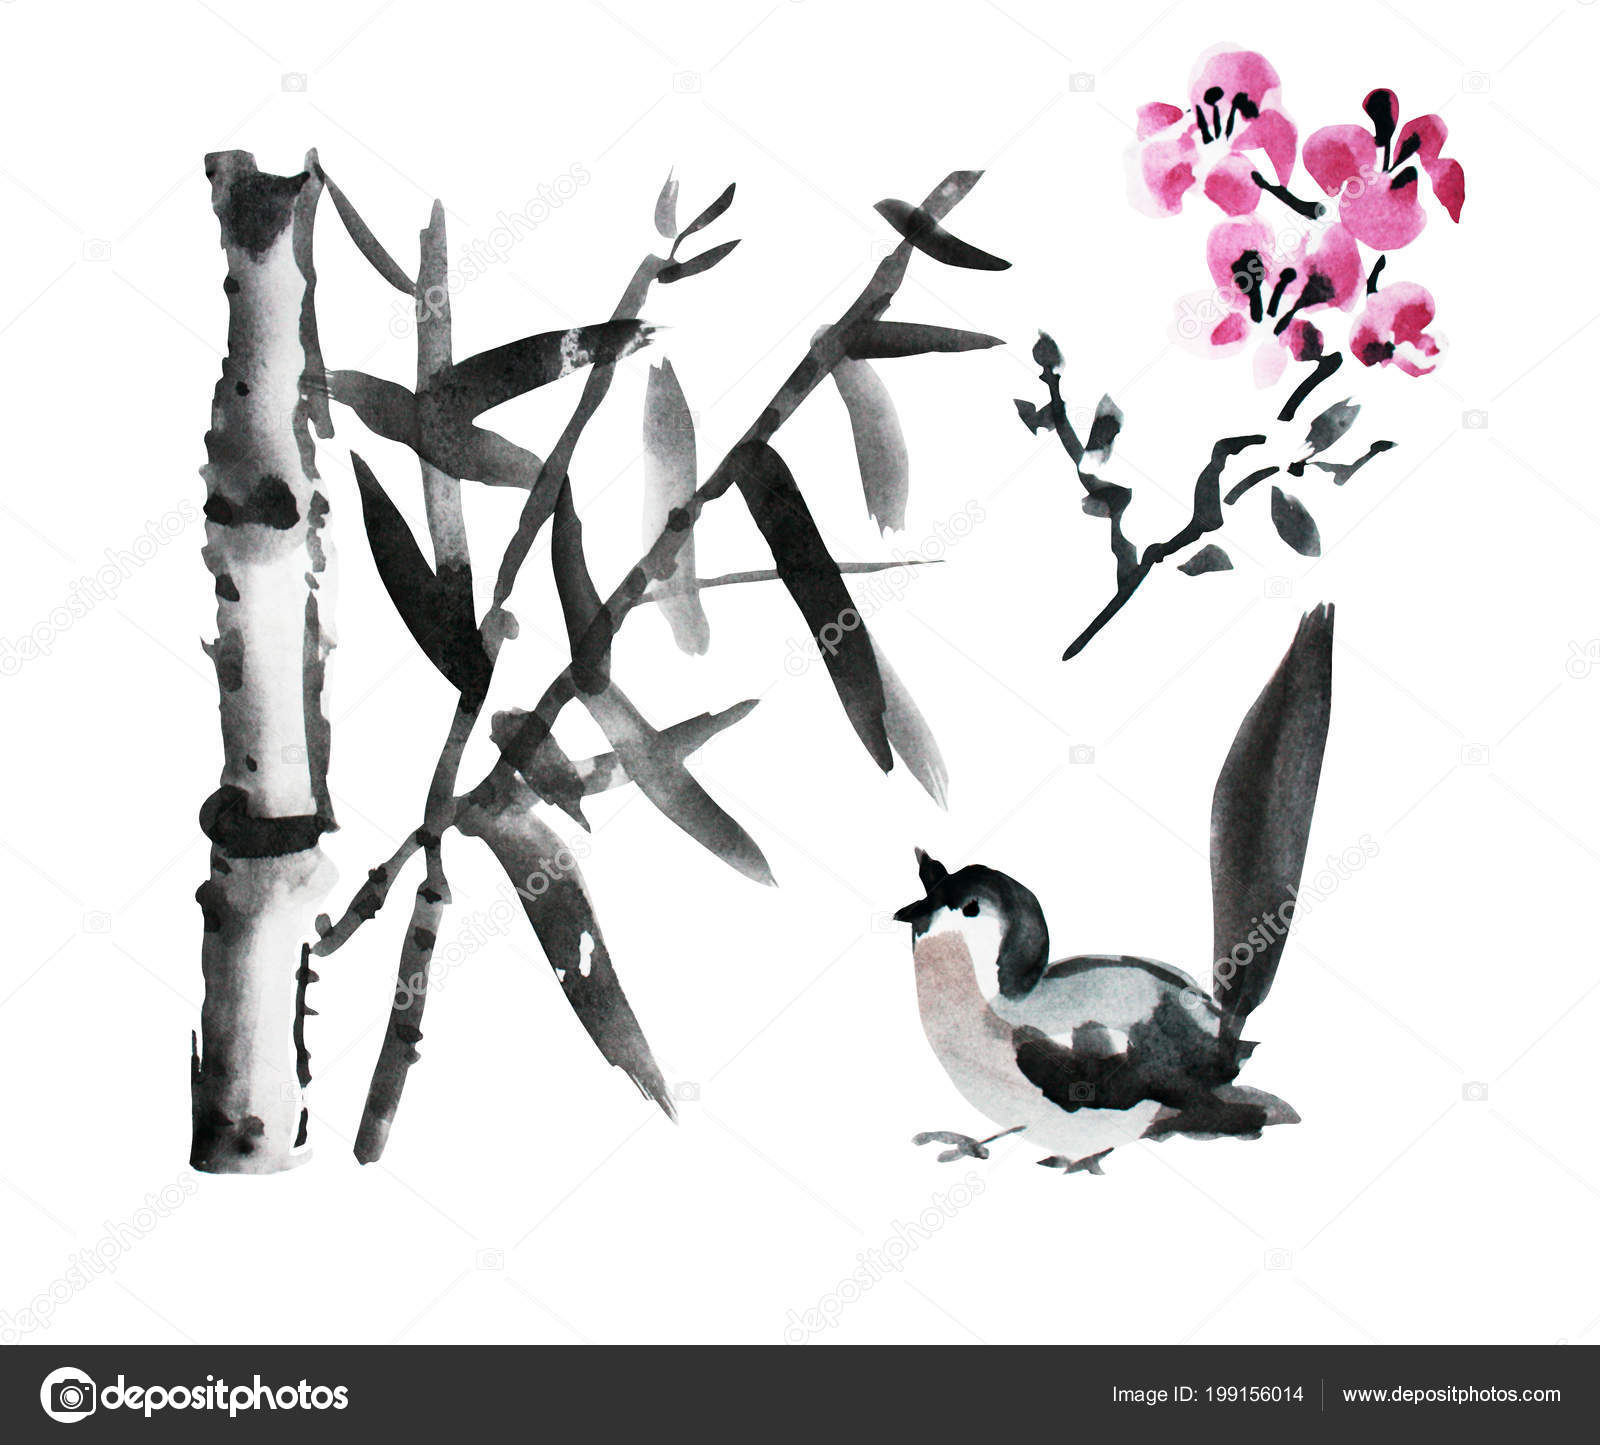 hight resolution of decorative watercolor bamboo plants bird sakura clipart design elements can stock photo